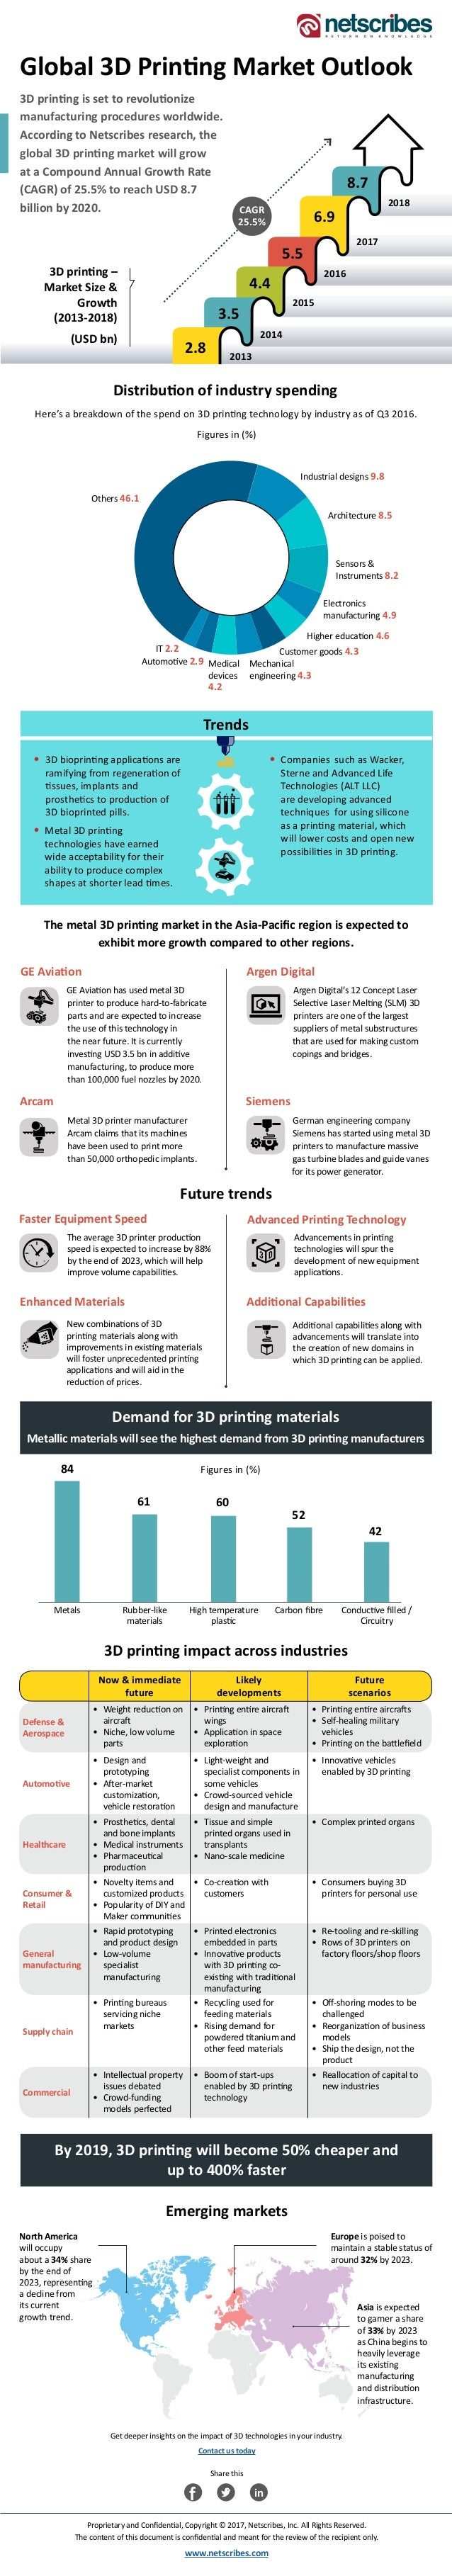 Global 3D Printing Market Outlook 3D printing is set to revolutionize manufacturing procedures worldwide. According to Net...